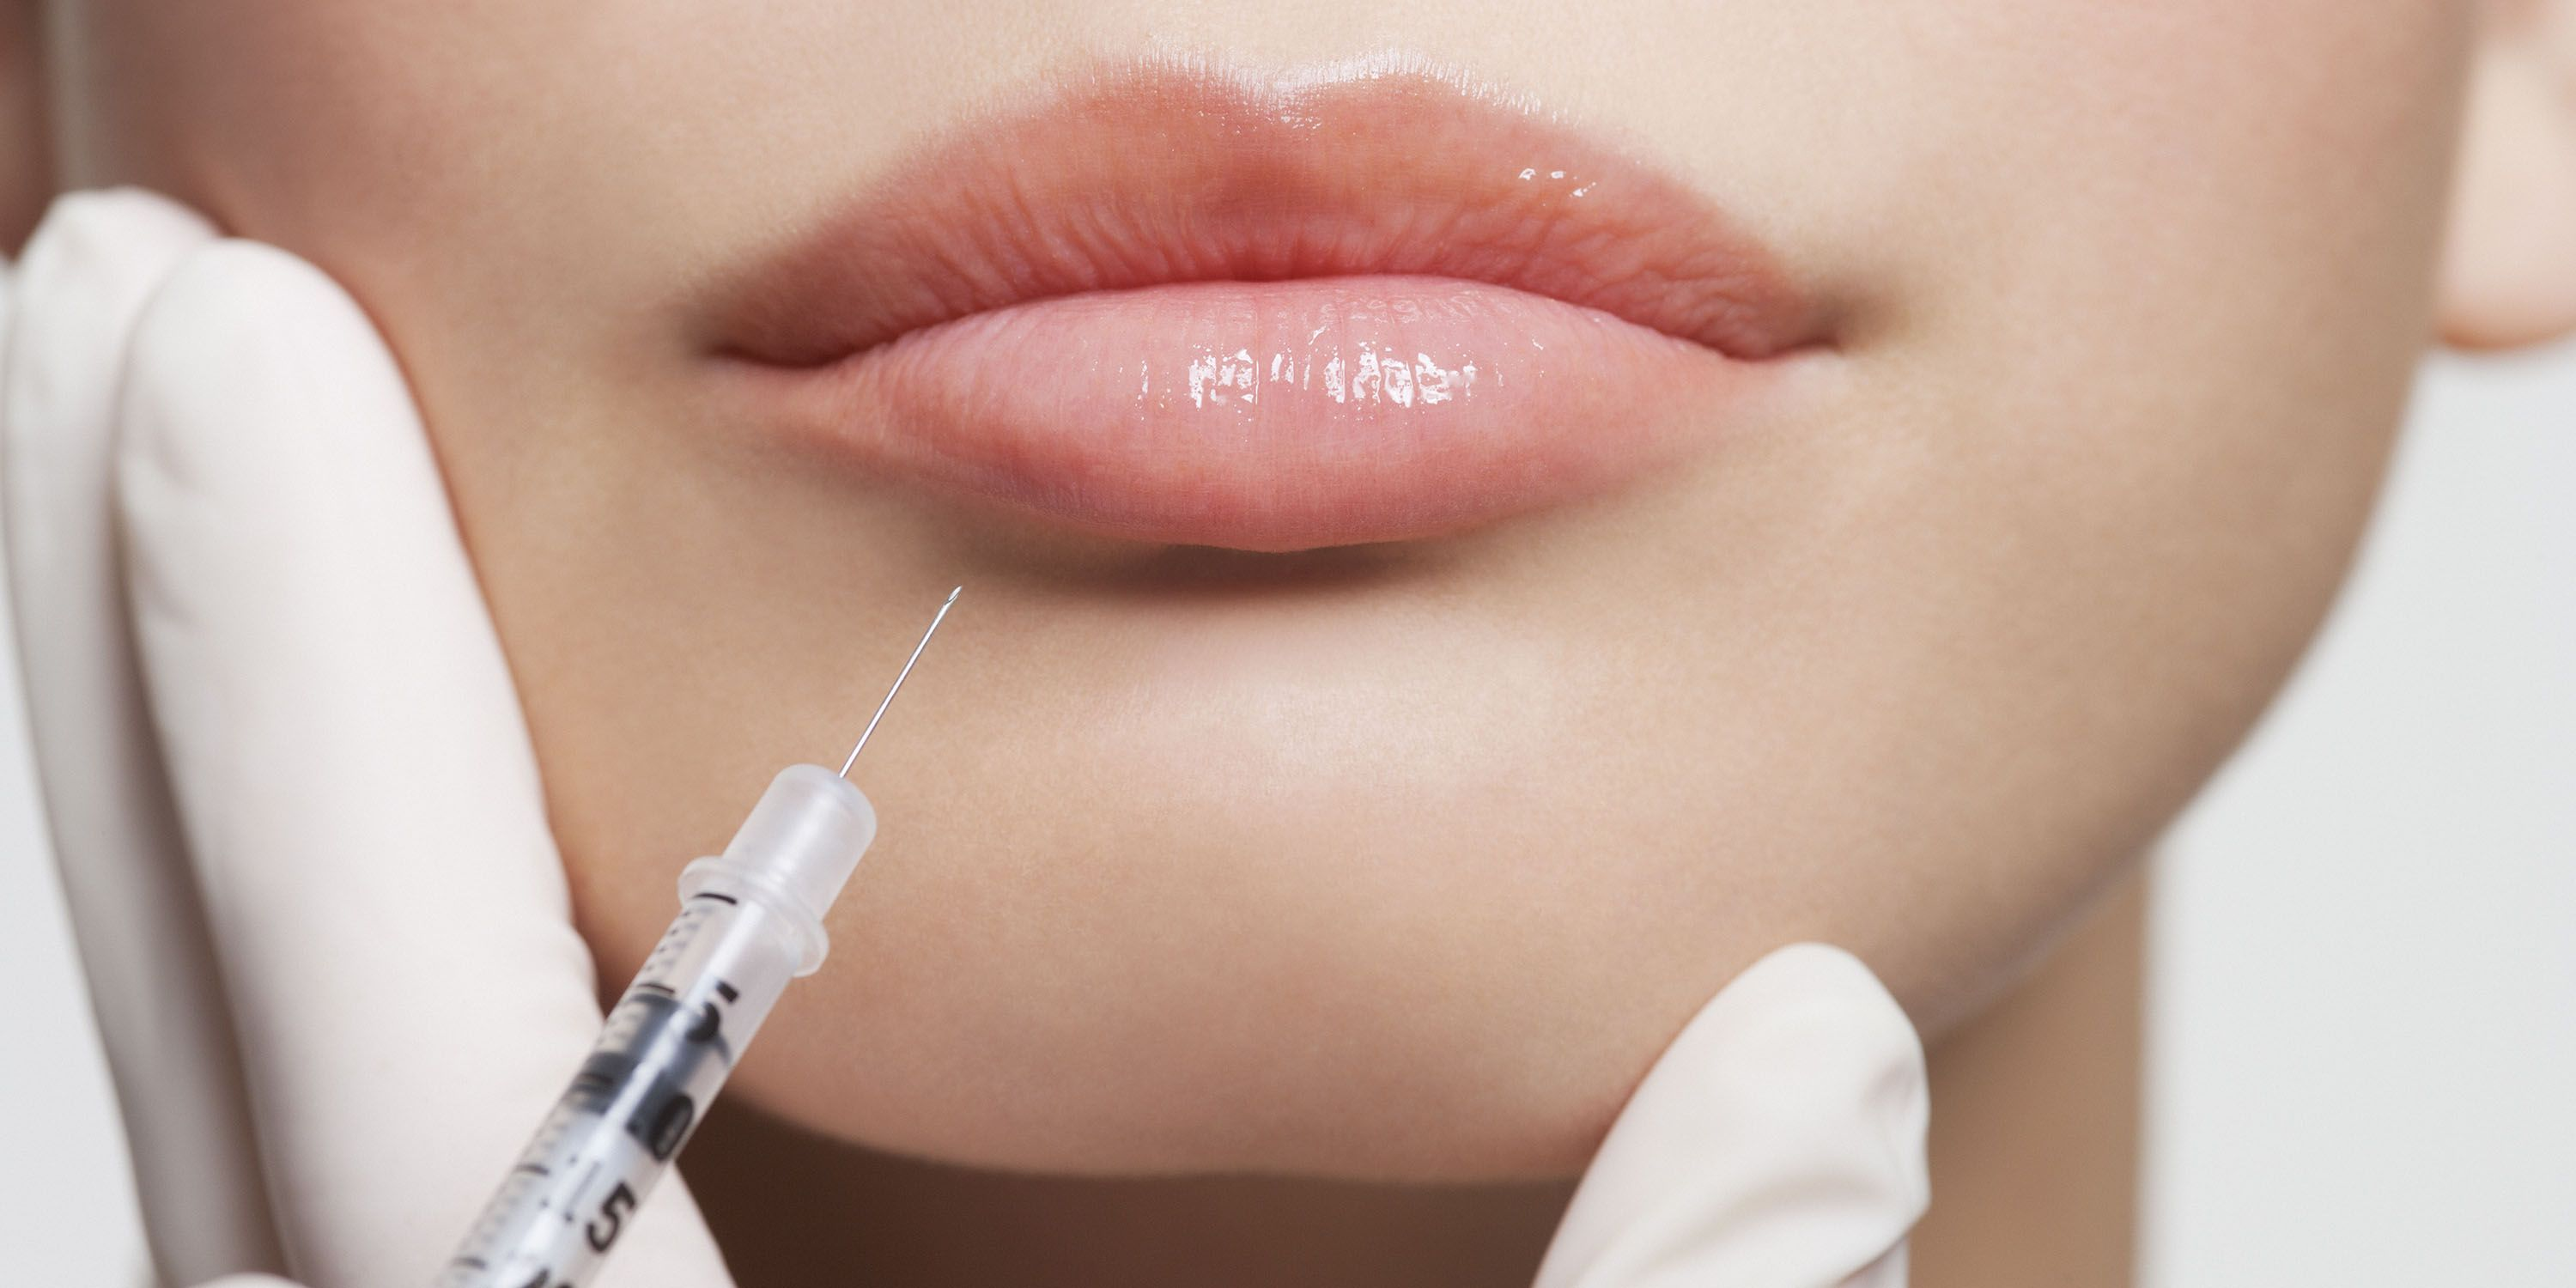 What You Need to Know About the New Double Chin Injection - FDA